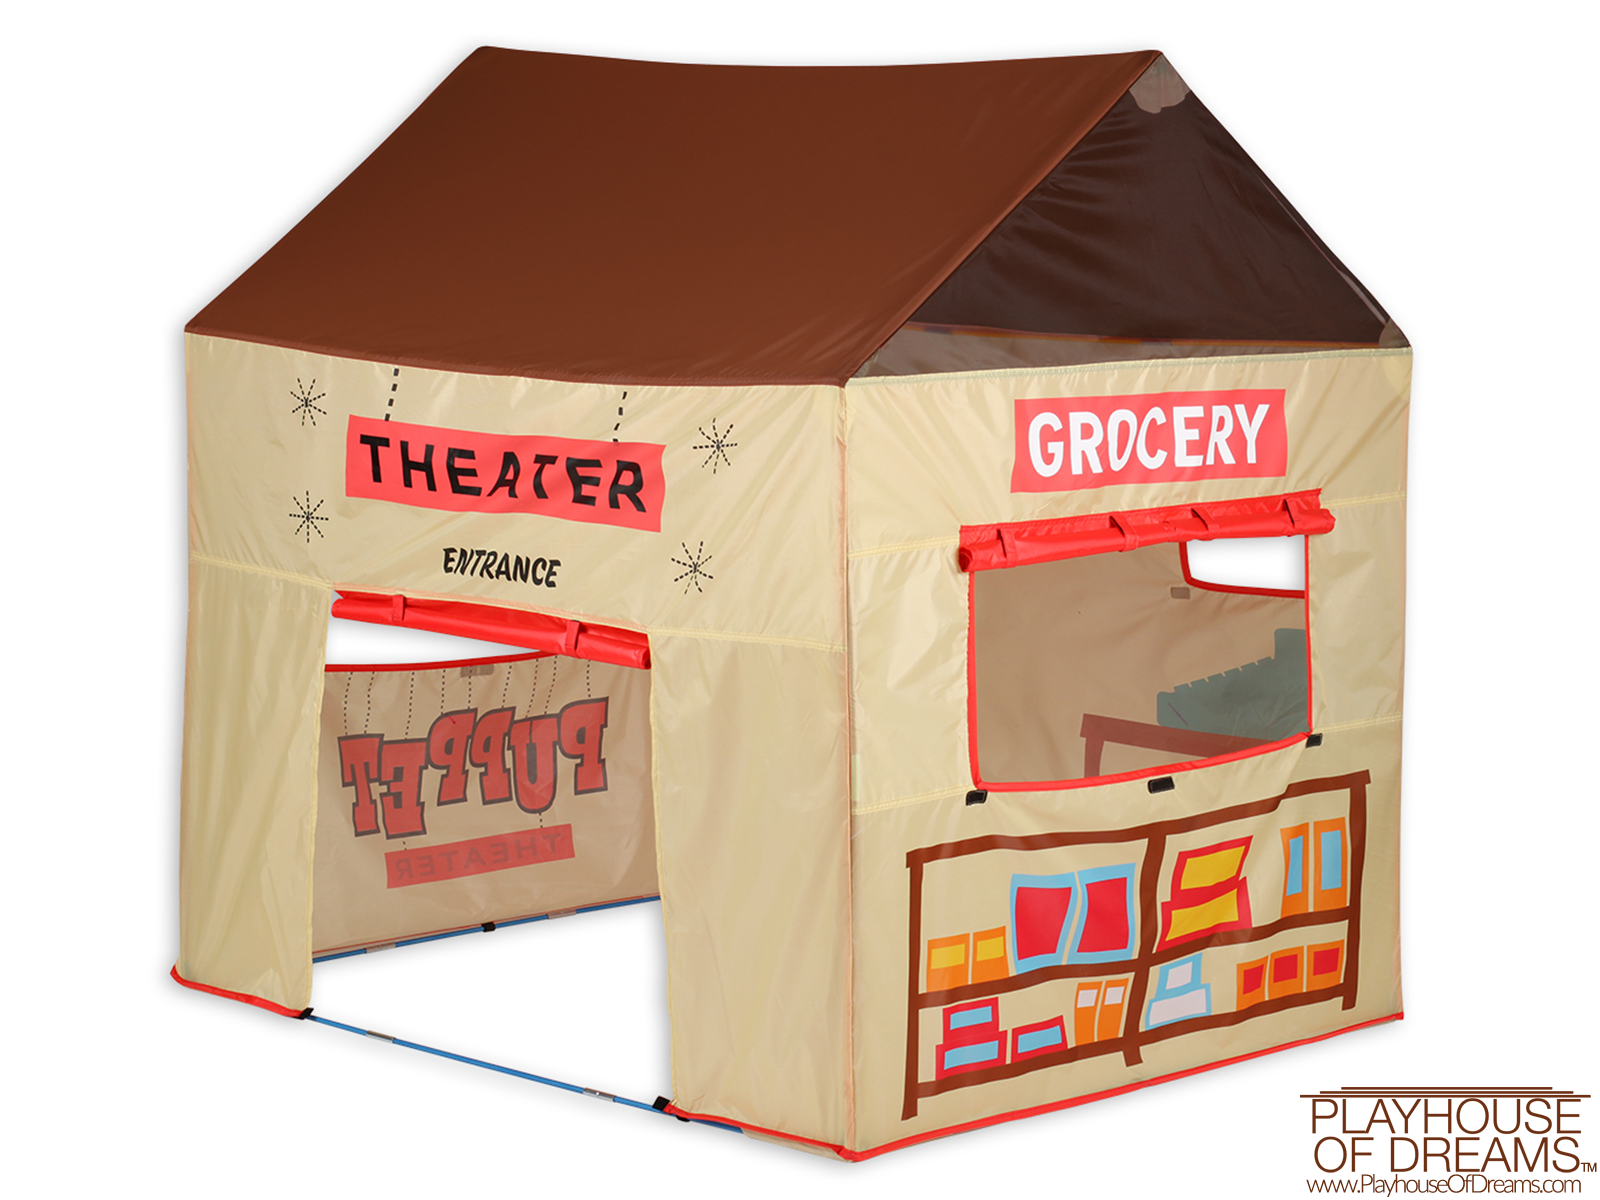 ... Grocery Theater Tent - Pacific Play Tent - Playhouse of Dreams - 6 ...  sc 1 st  Playhouse of Dreams & Grocery Theater Tent - Buy Online - Pacific Play Tent - Playhouse ...